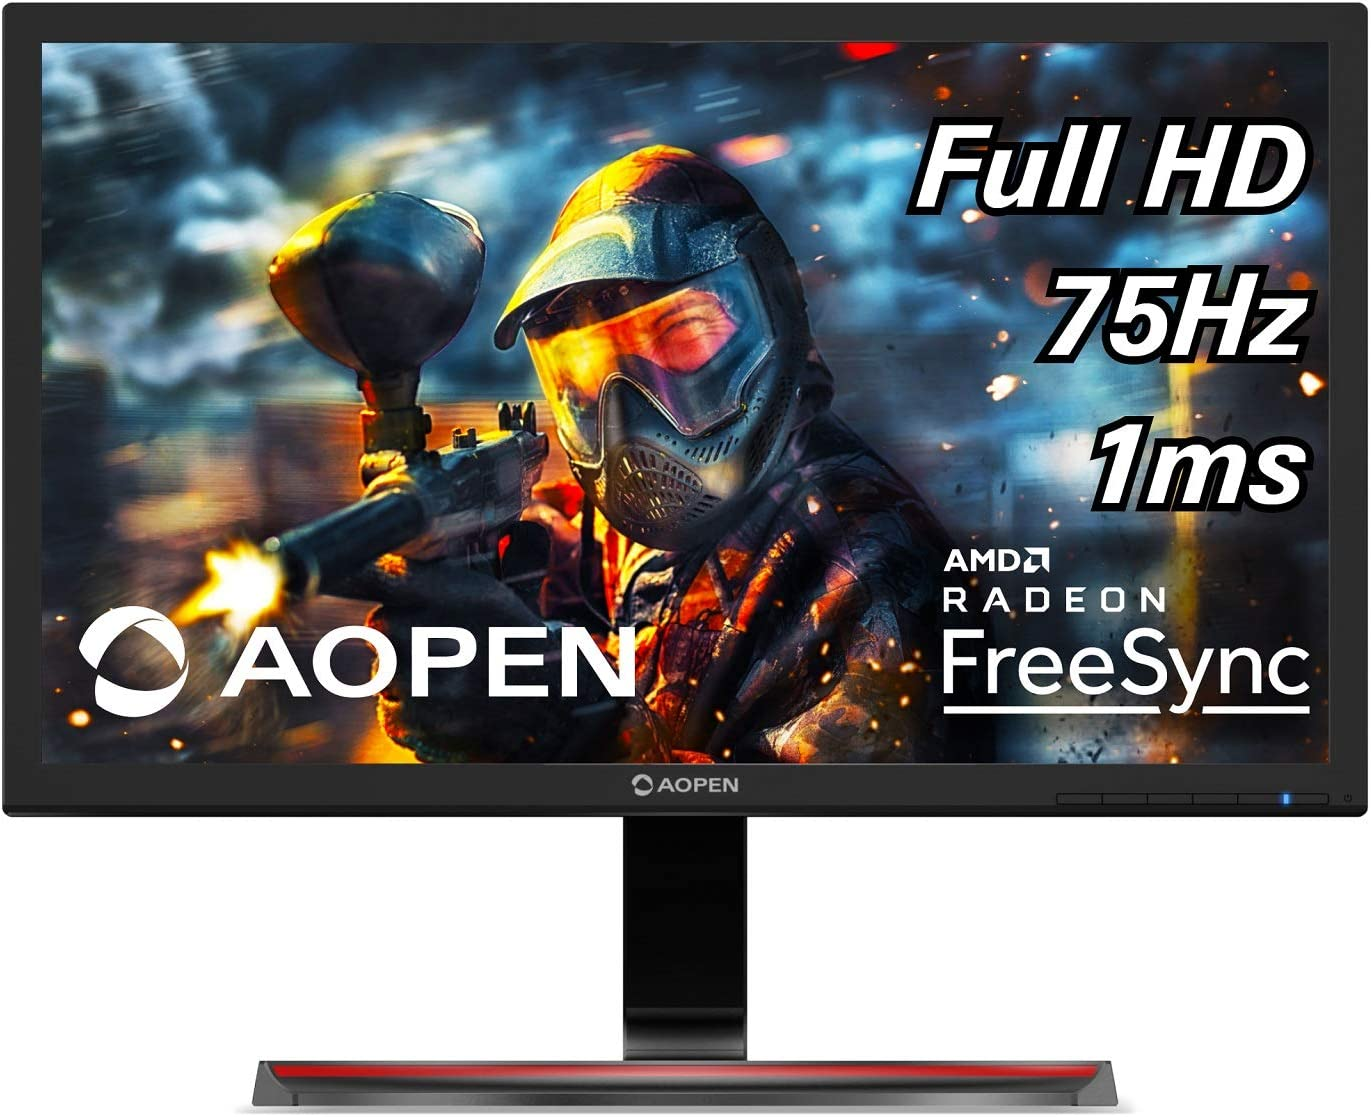 AOPEN -Full HD